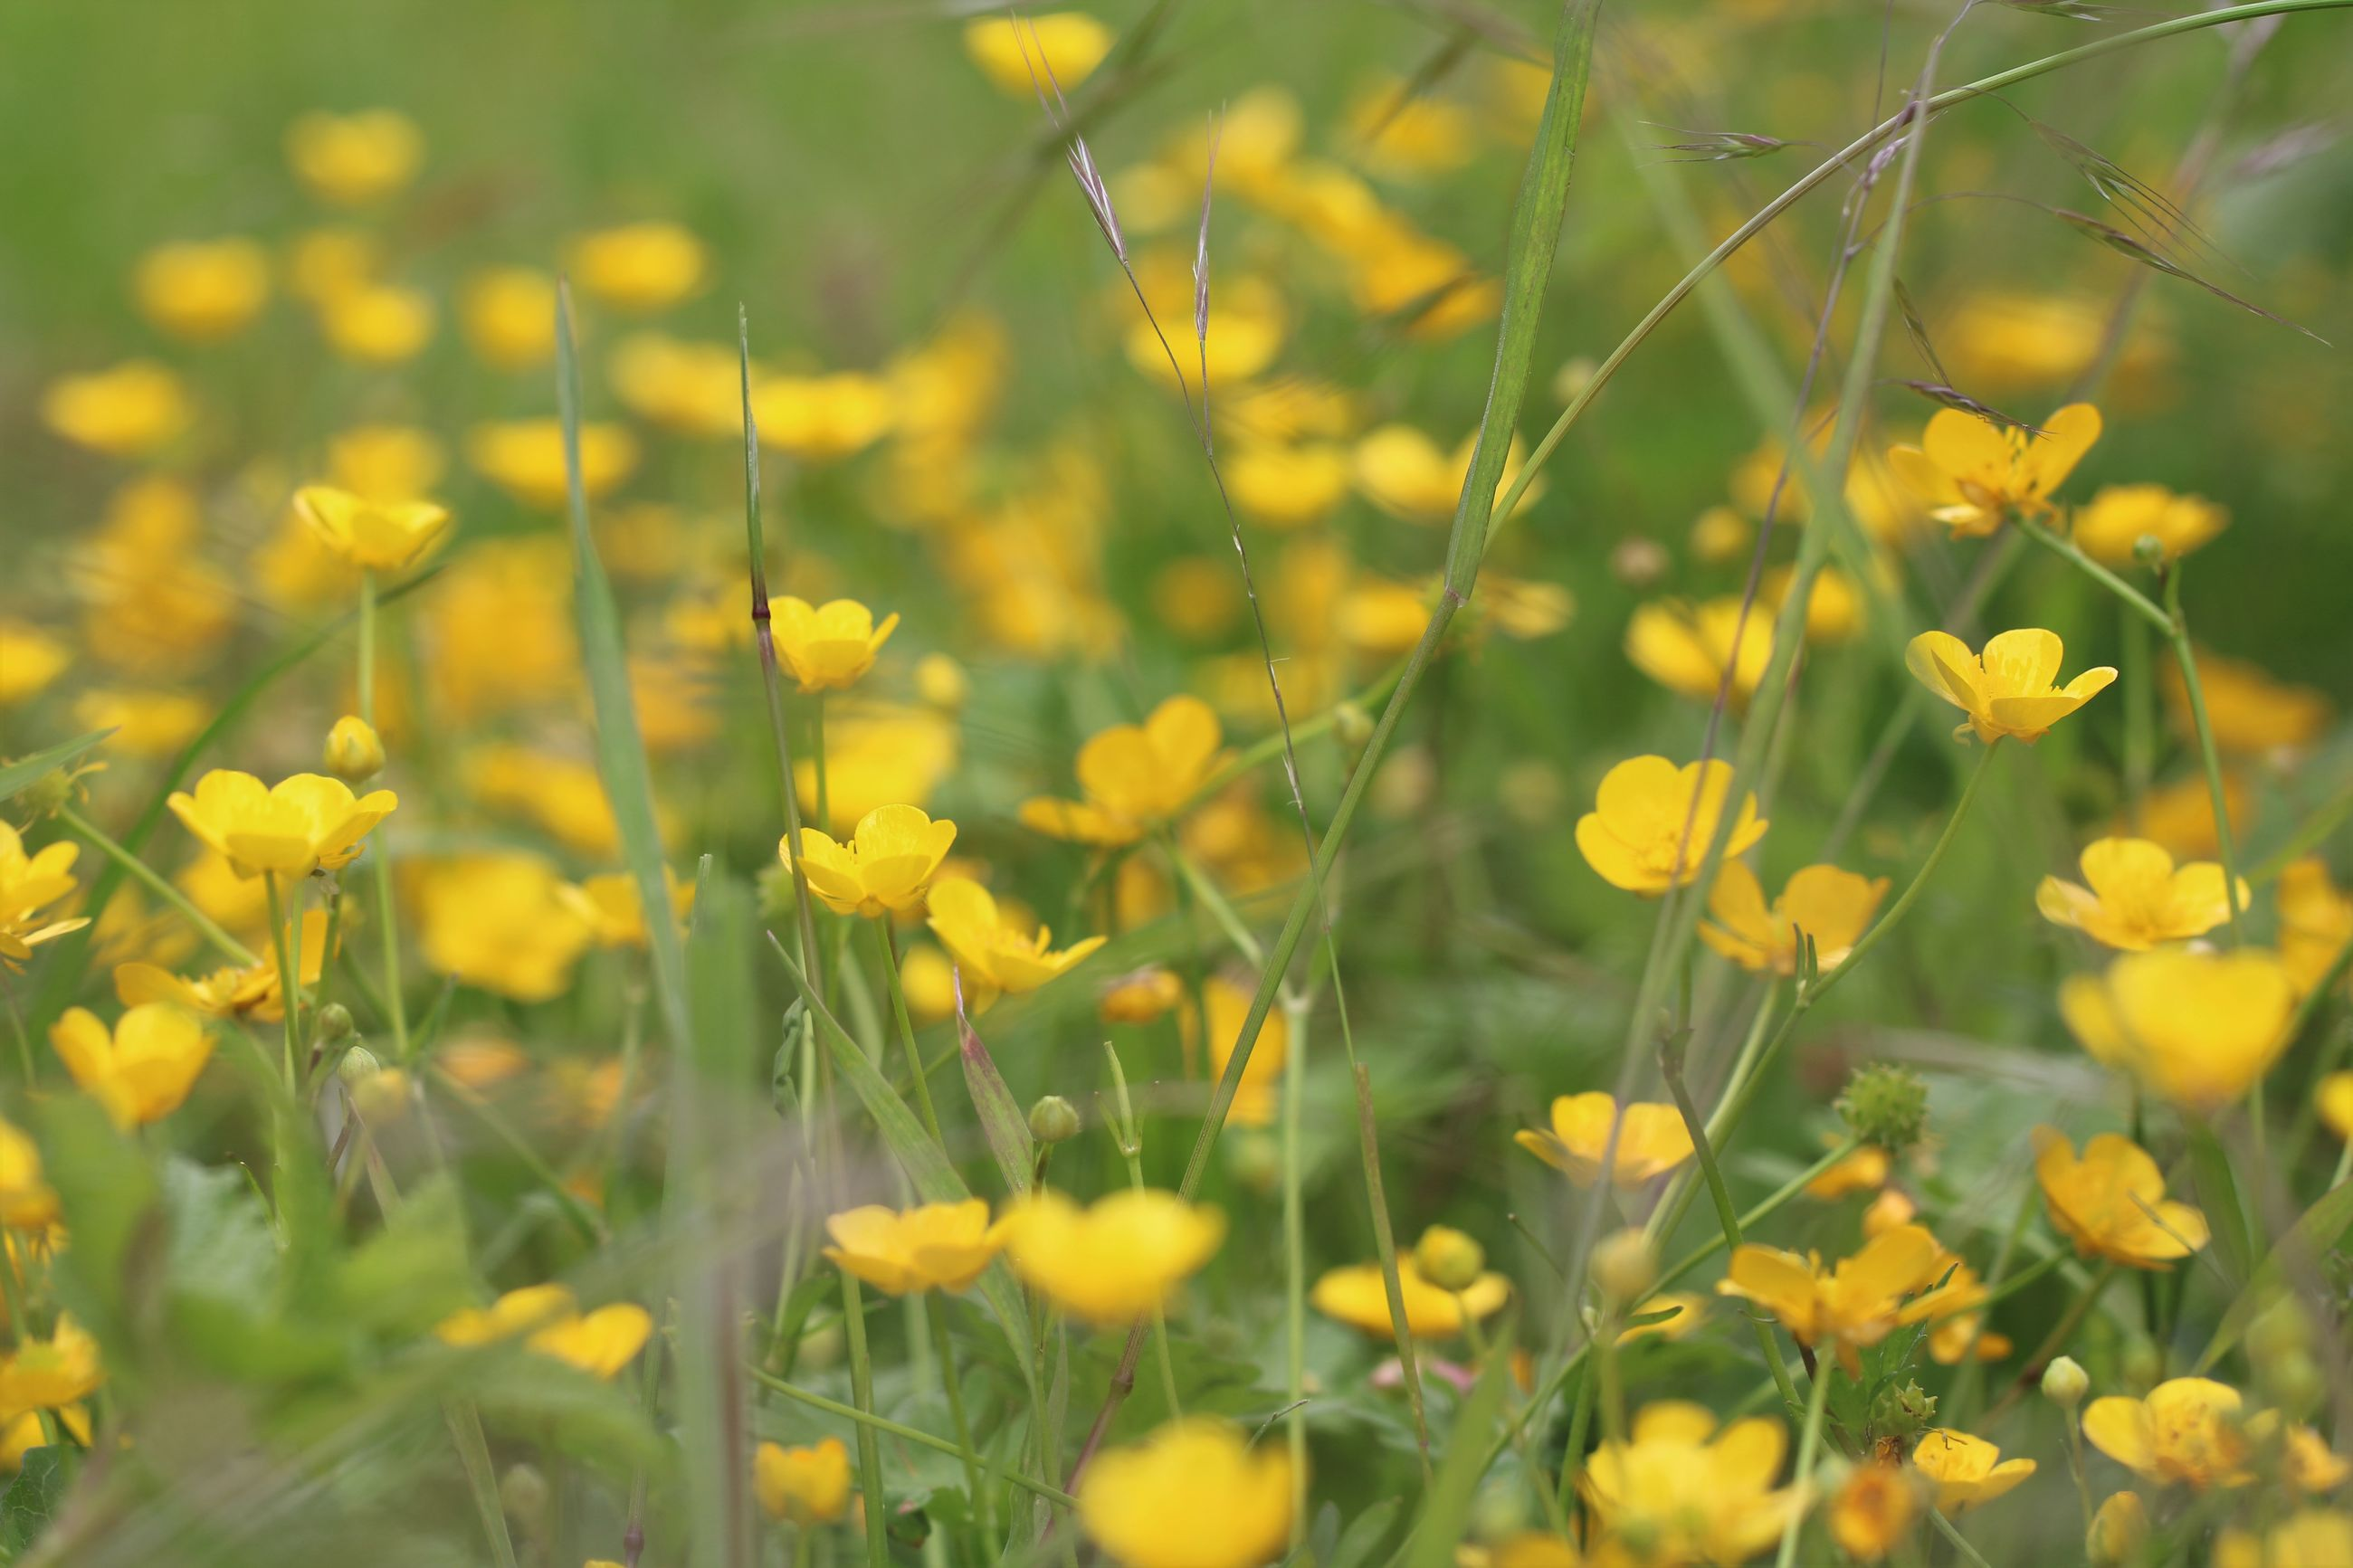 flower, yellow, growth, freshness, beauty in nature, fragility, focus on foreground, nature, plant, field, selective focus, close-up, blooming, petal, stem, outdoors, day, no people, in bloom, flower head